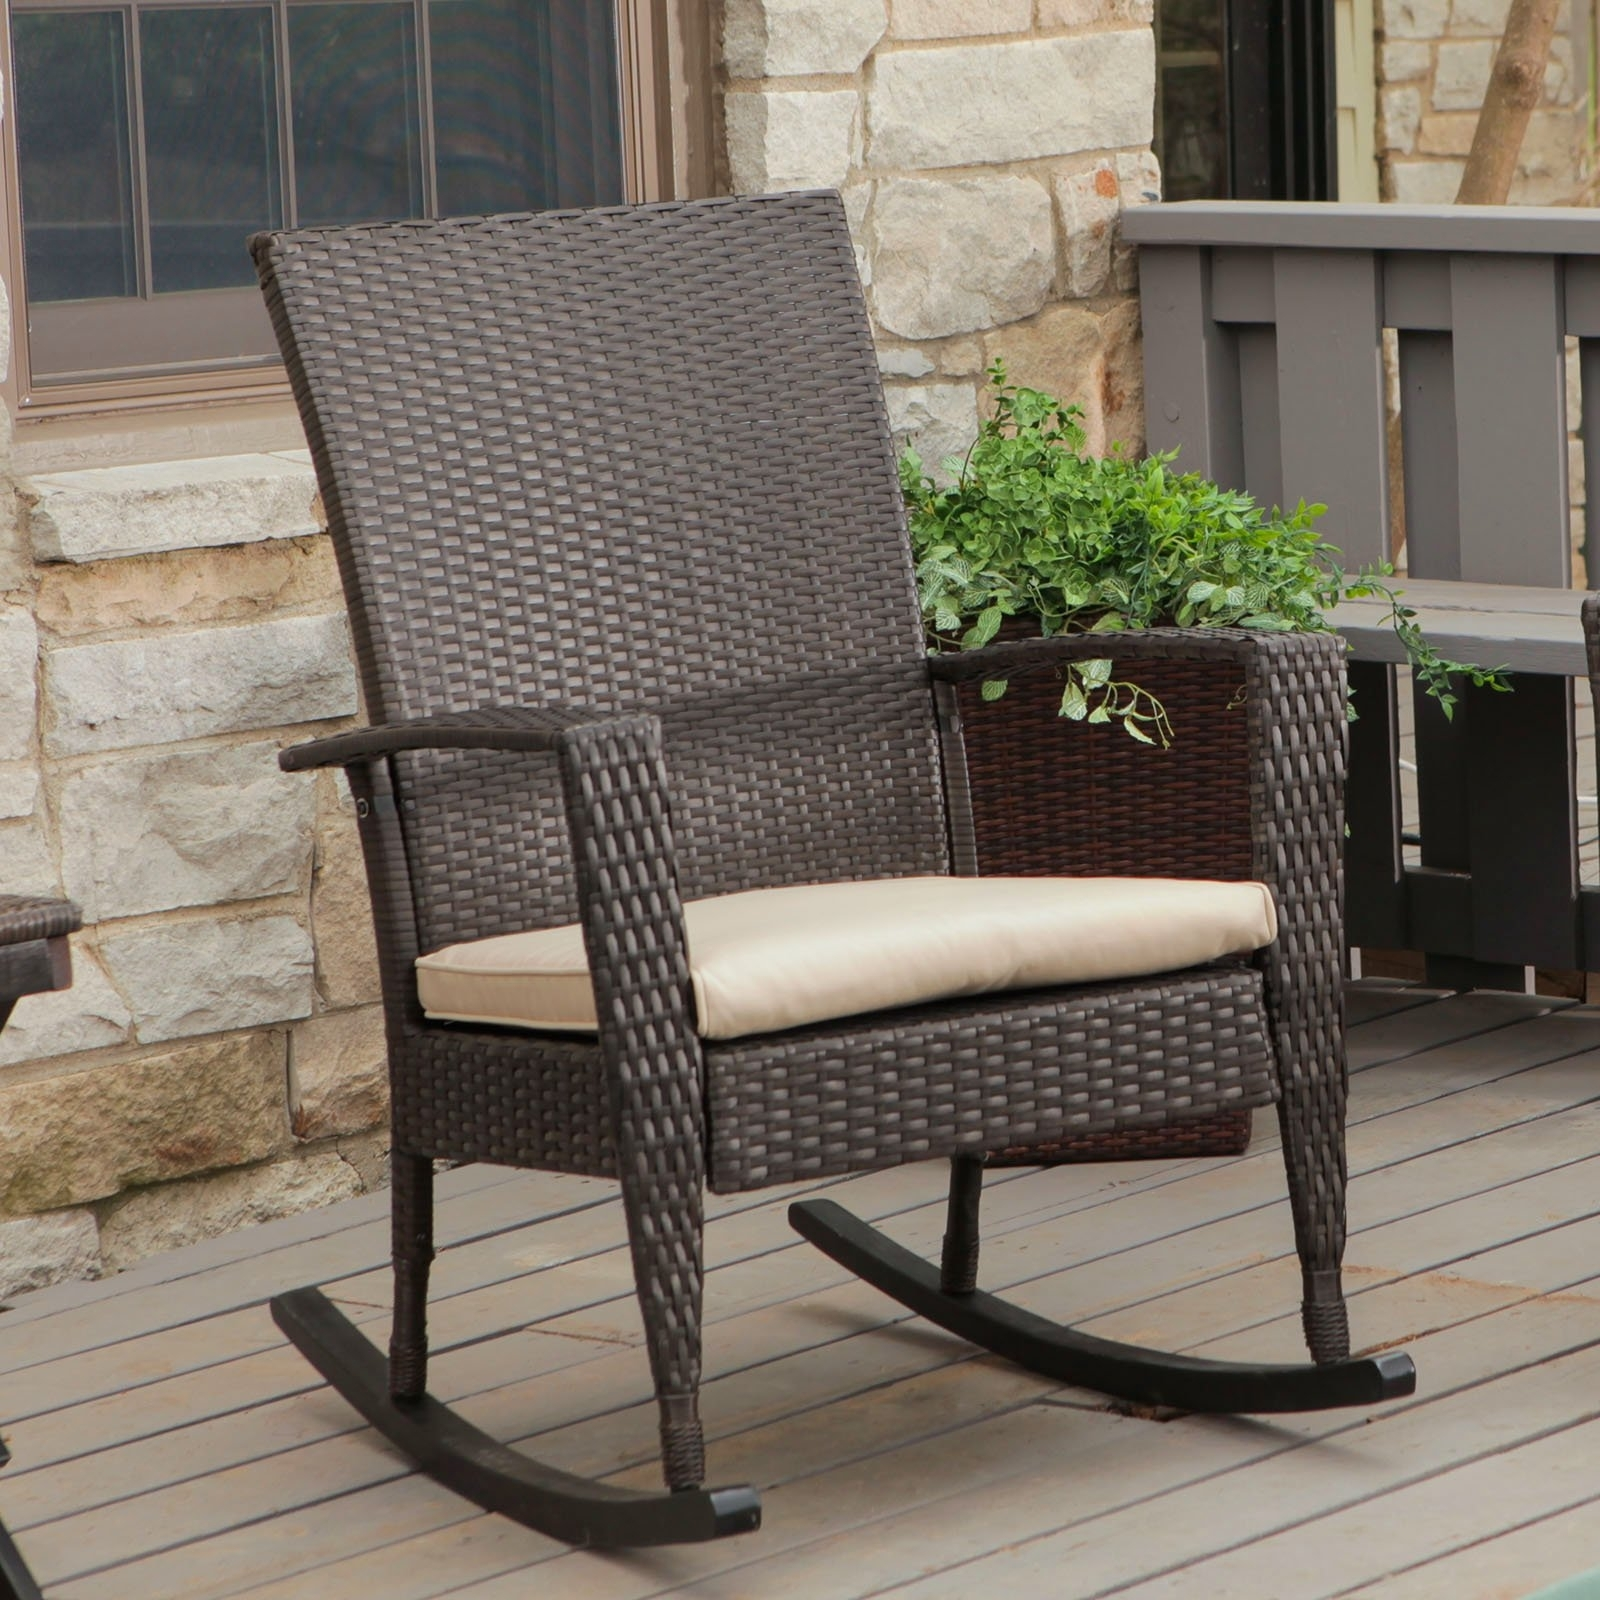 Decorating Modern Lawn Chairs Modern Balcony Furniture Modern Patio Within Patio Rocking Chairs (View 4 of 15)